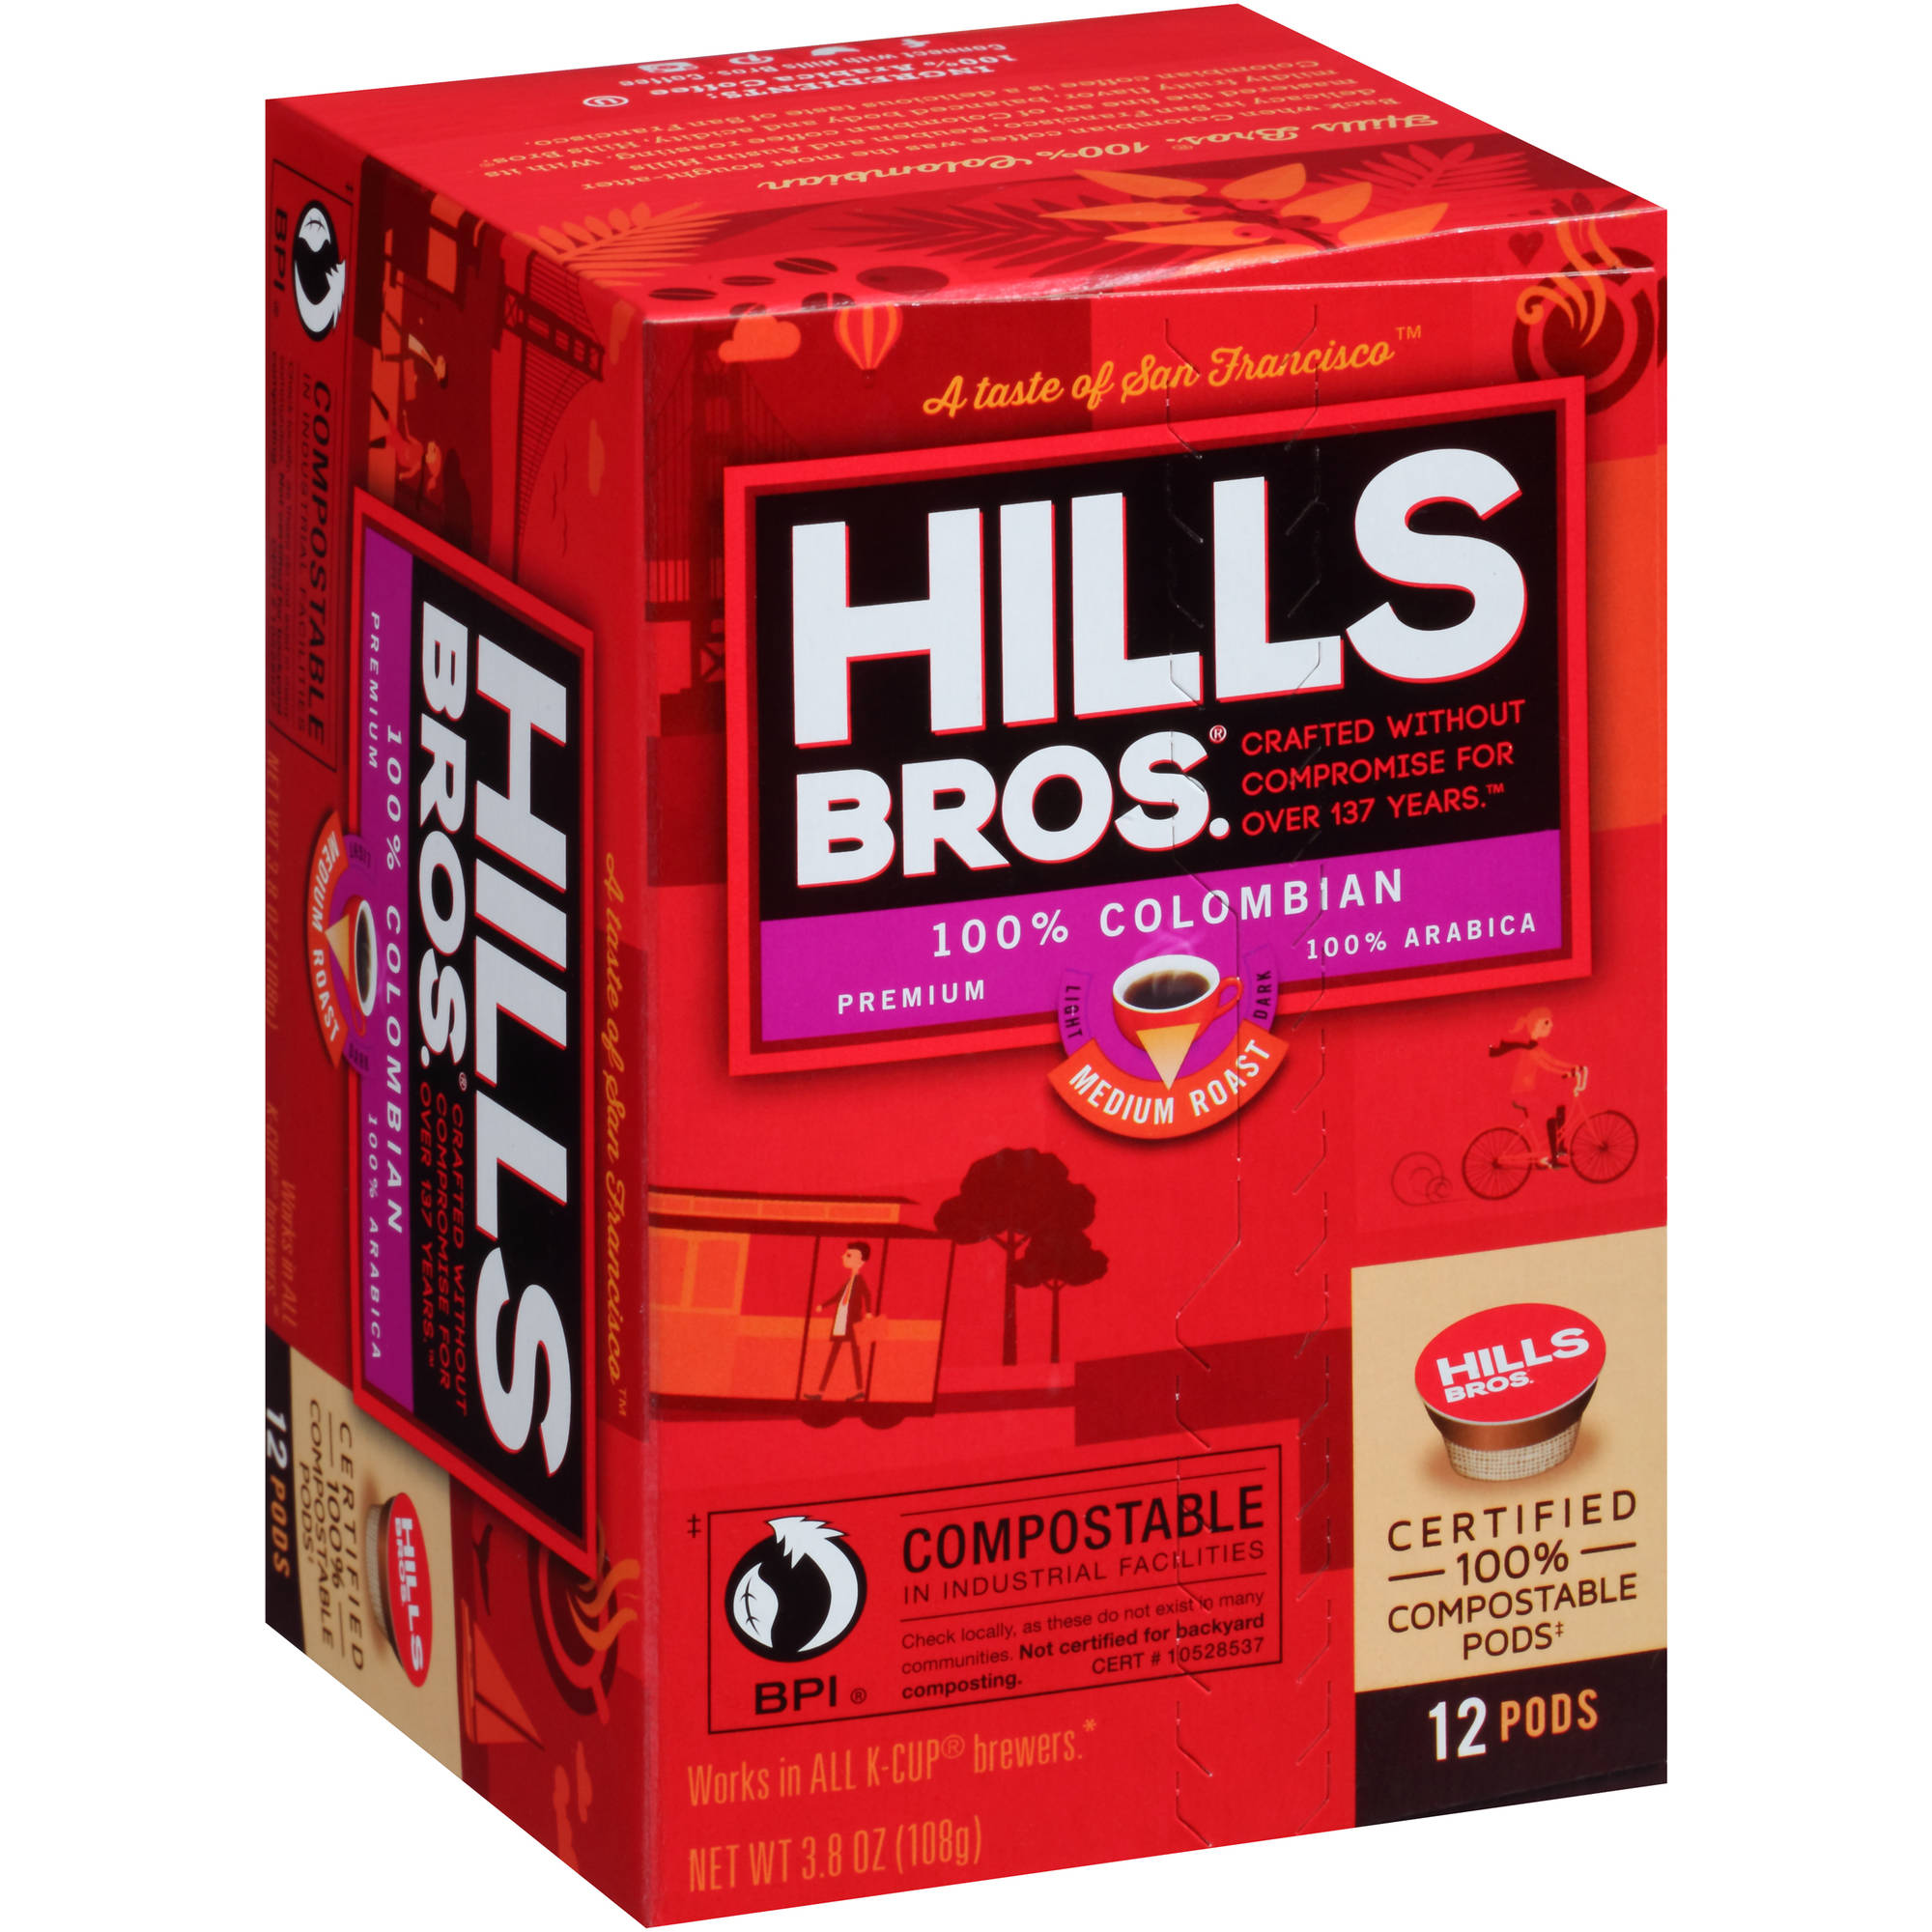 Hills Bros. 100% Colombian Medium Roast Coffee Single Serve Cups, 12 count, 3.8 oz